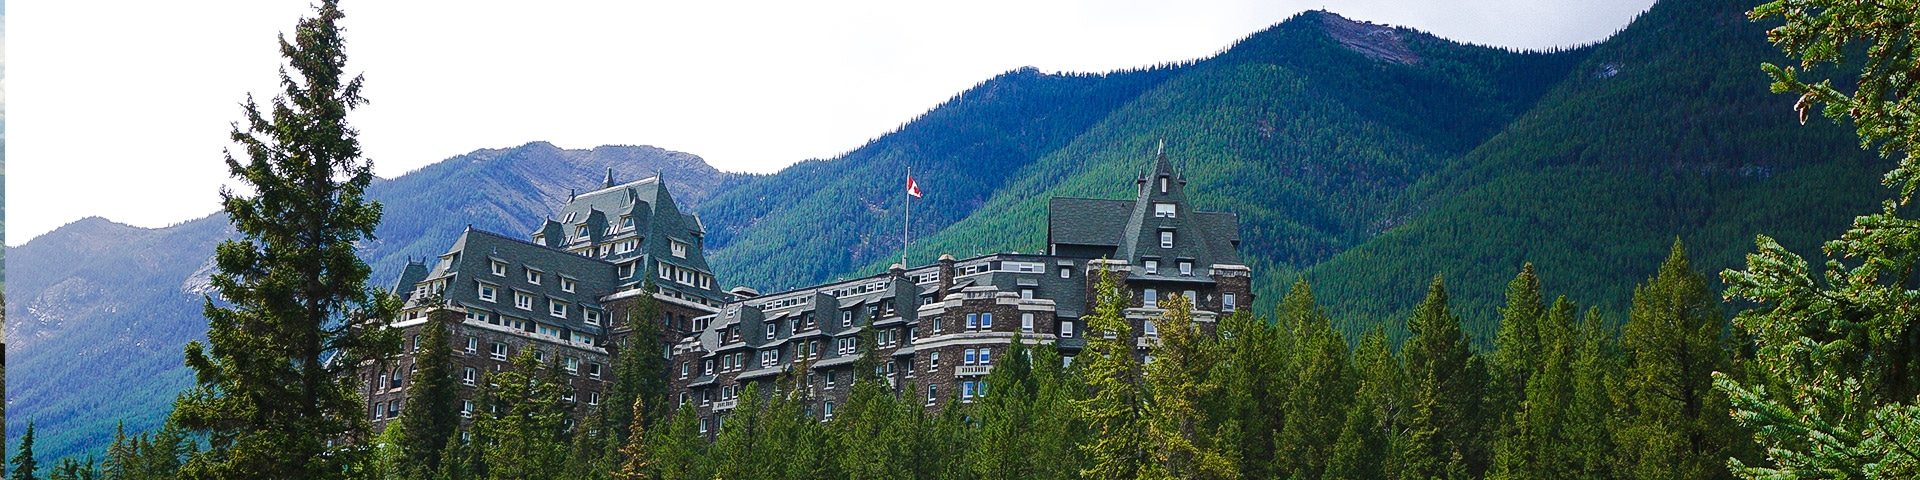 Panorama from the Banff Bow River to Bow Falls to Banff Springs hike in Banff, Alberta